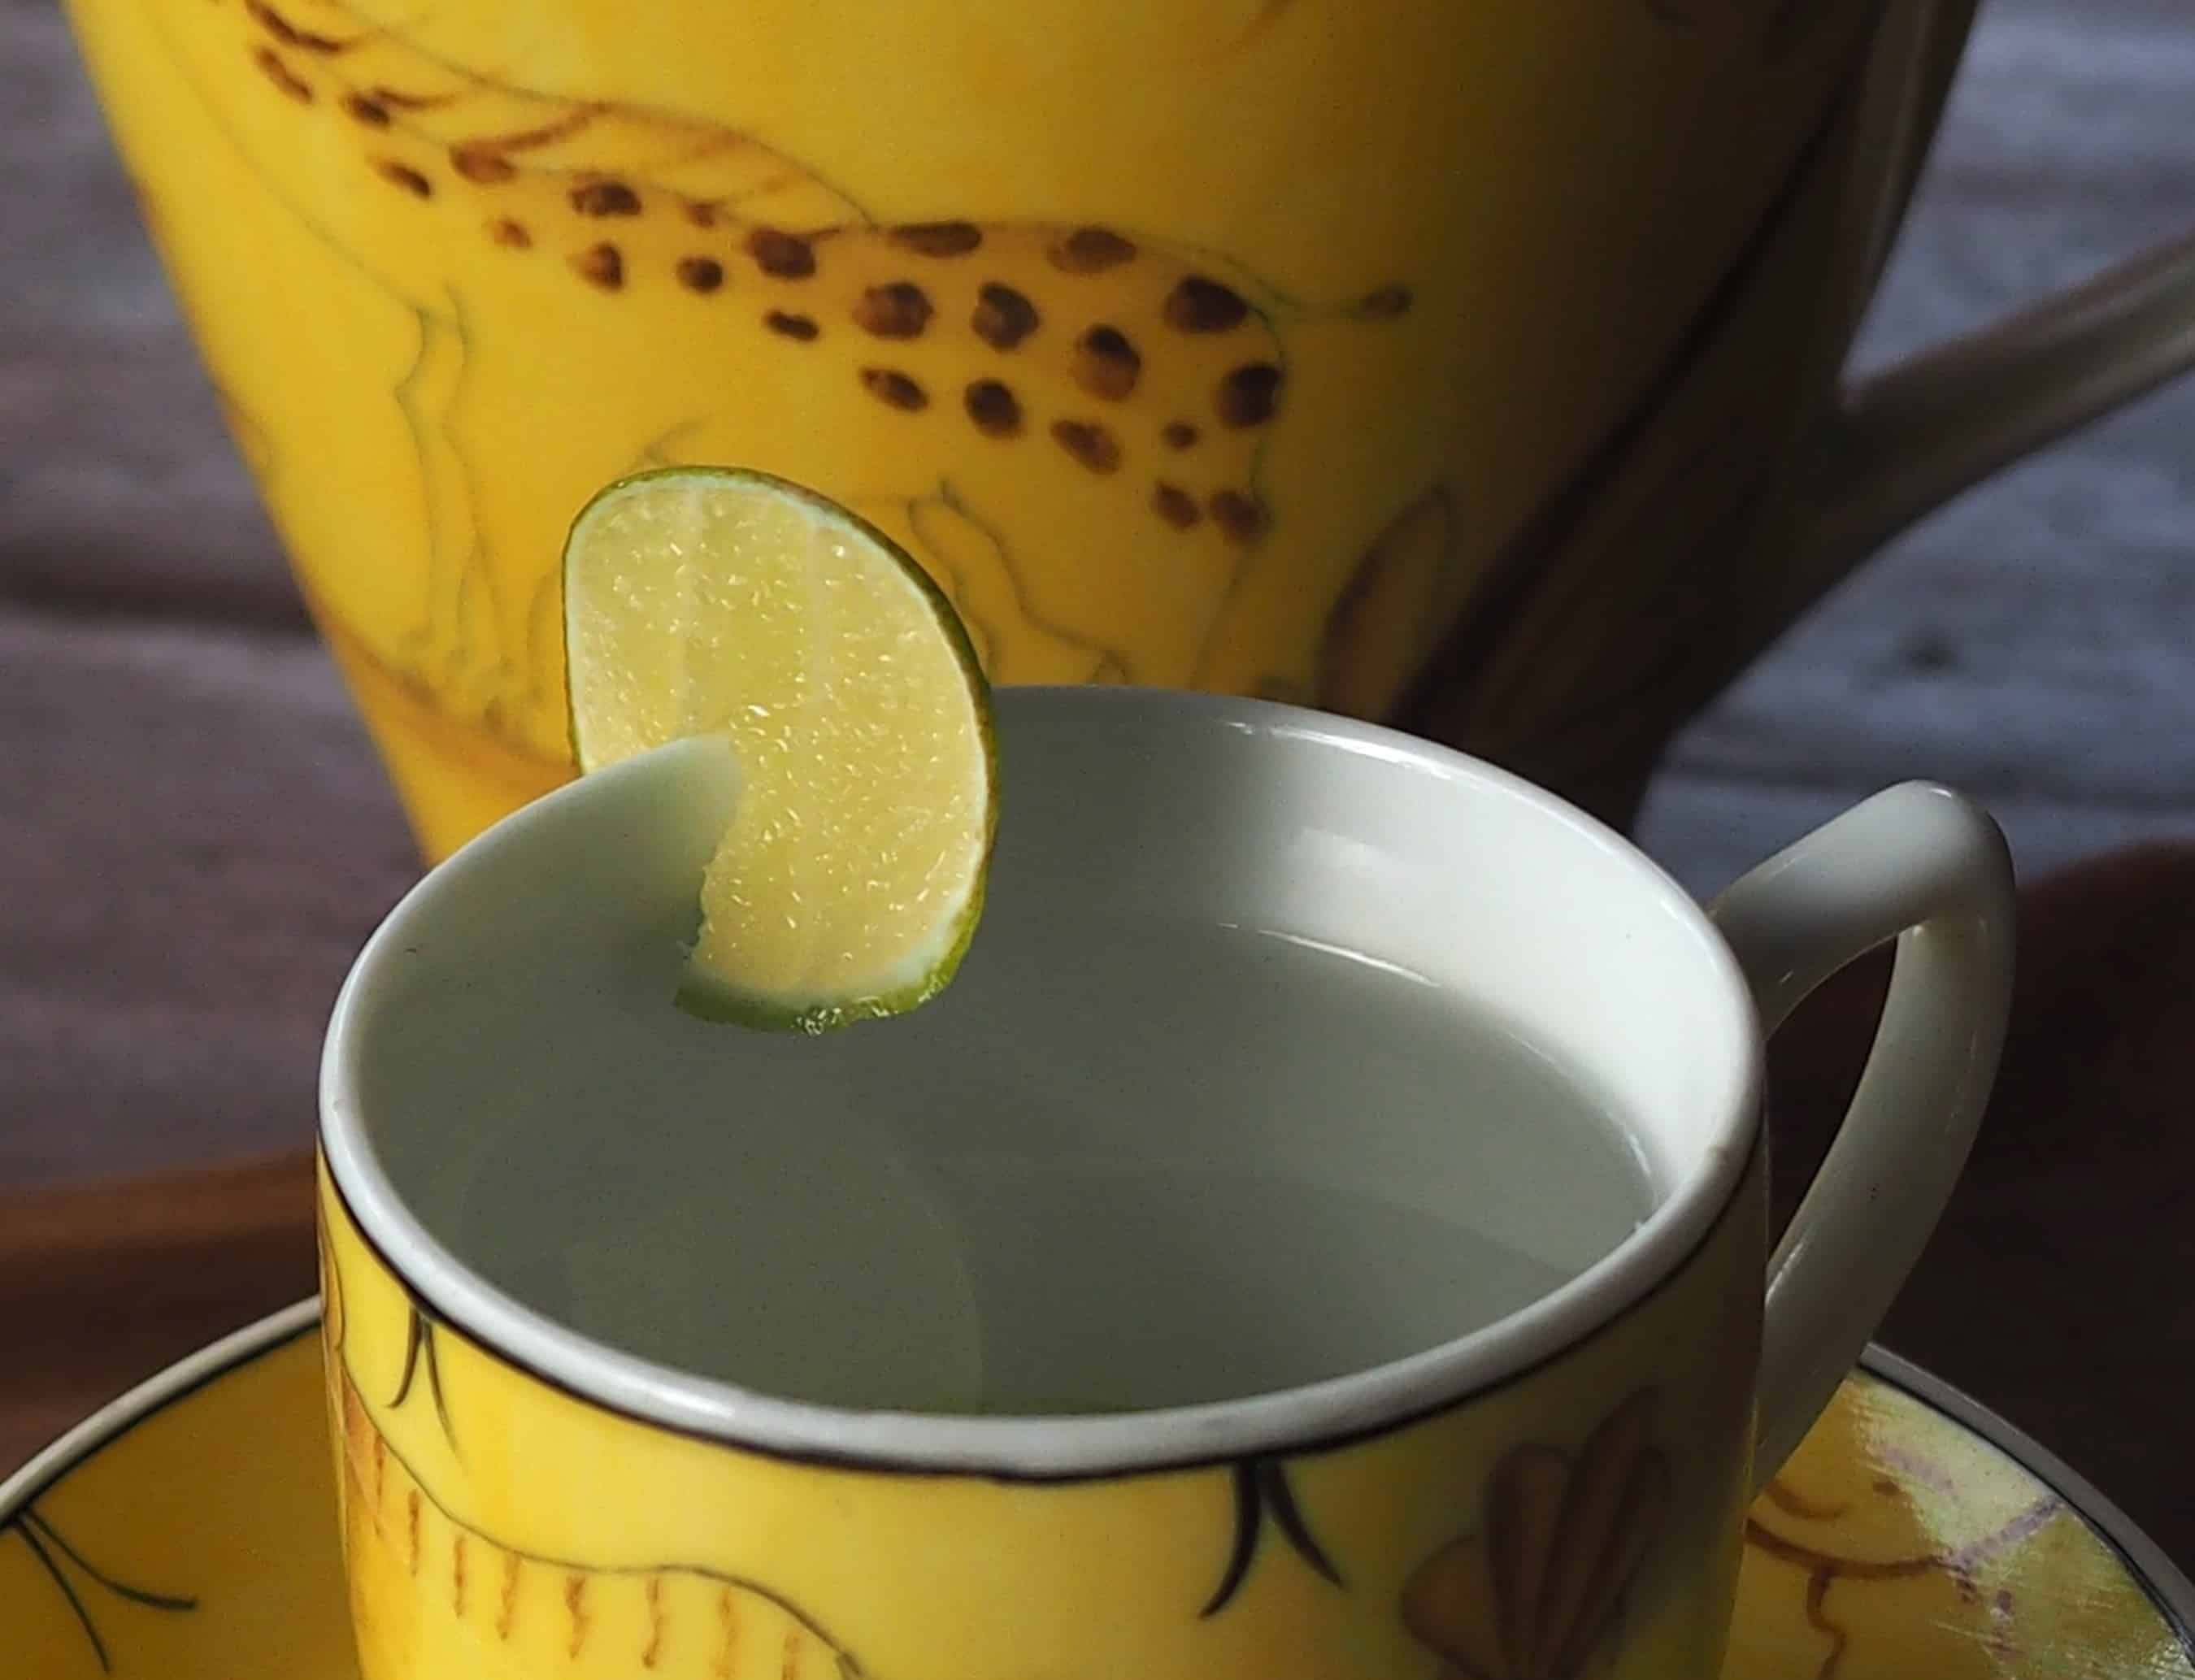 Get your digestive juices flowing with a cup of lemon and warm water